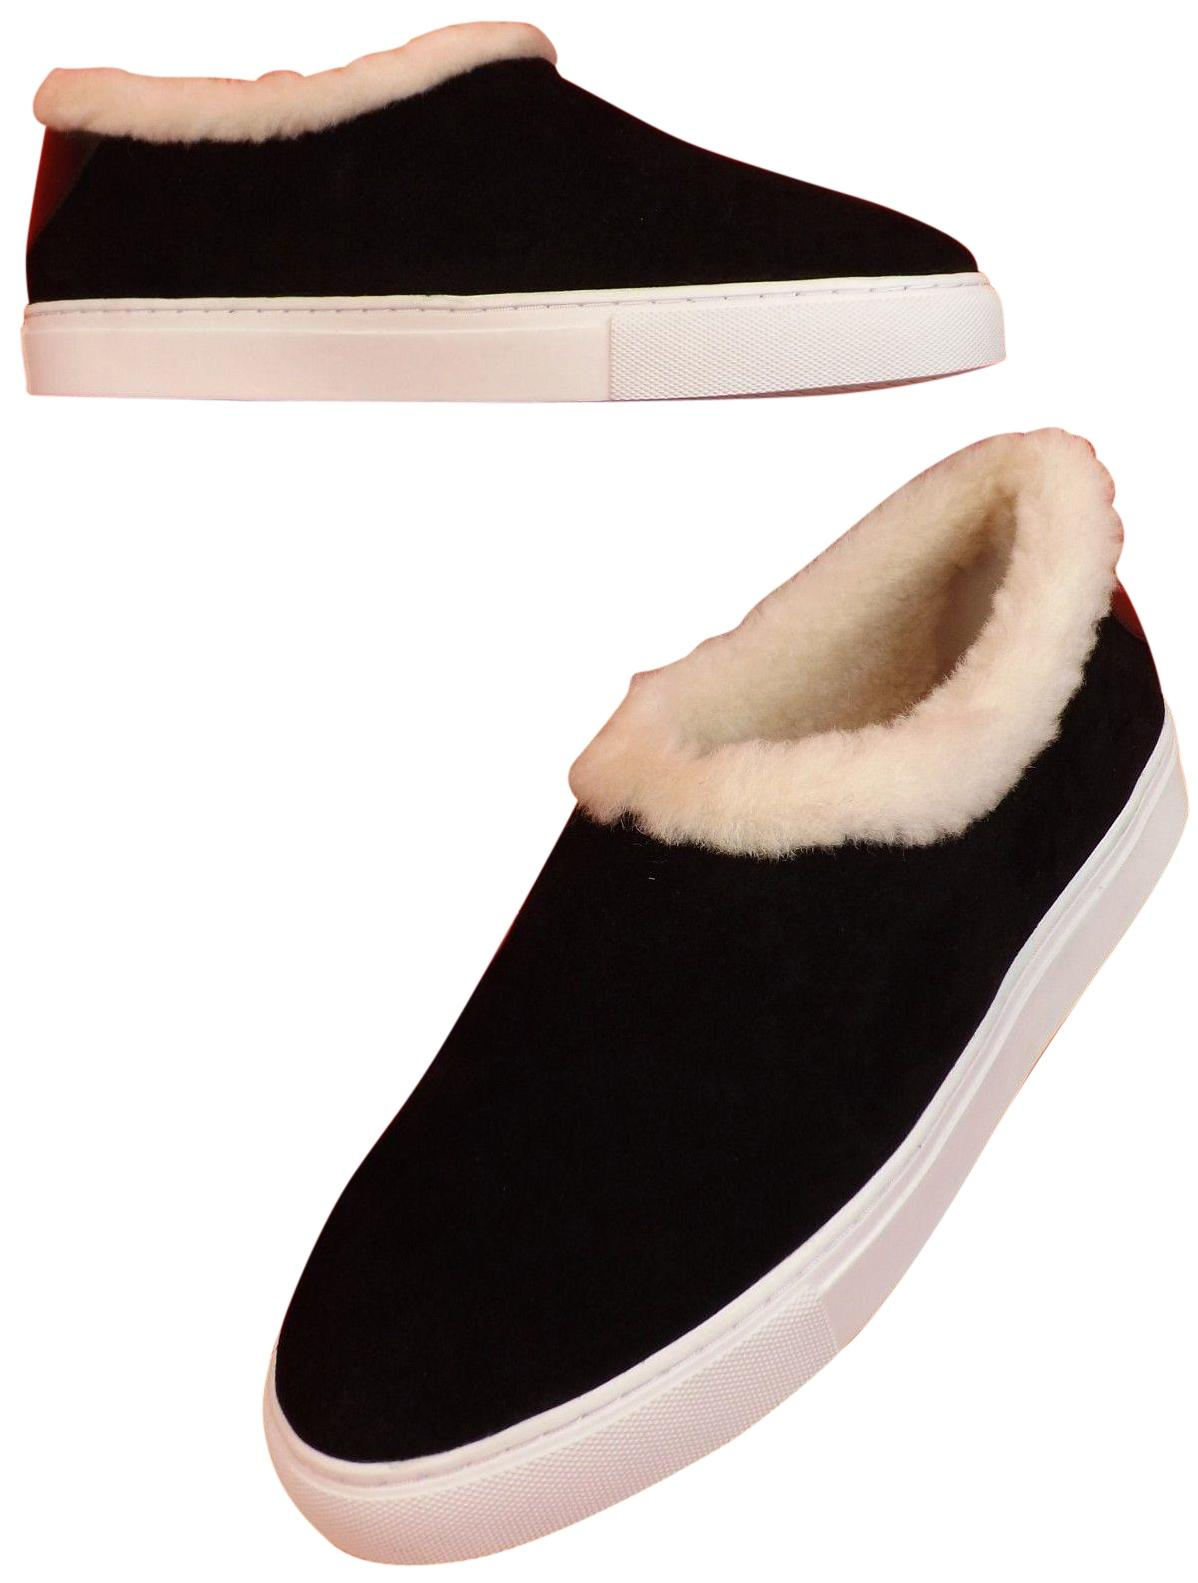 e6a987af1d87 Tory Burch Black Miller Suede Suede Suede Shearling Reva Slip On Sneakers  Flats Size US 10.5